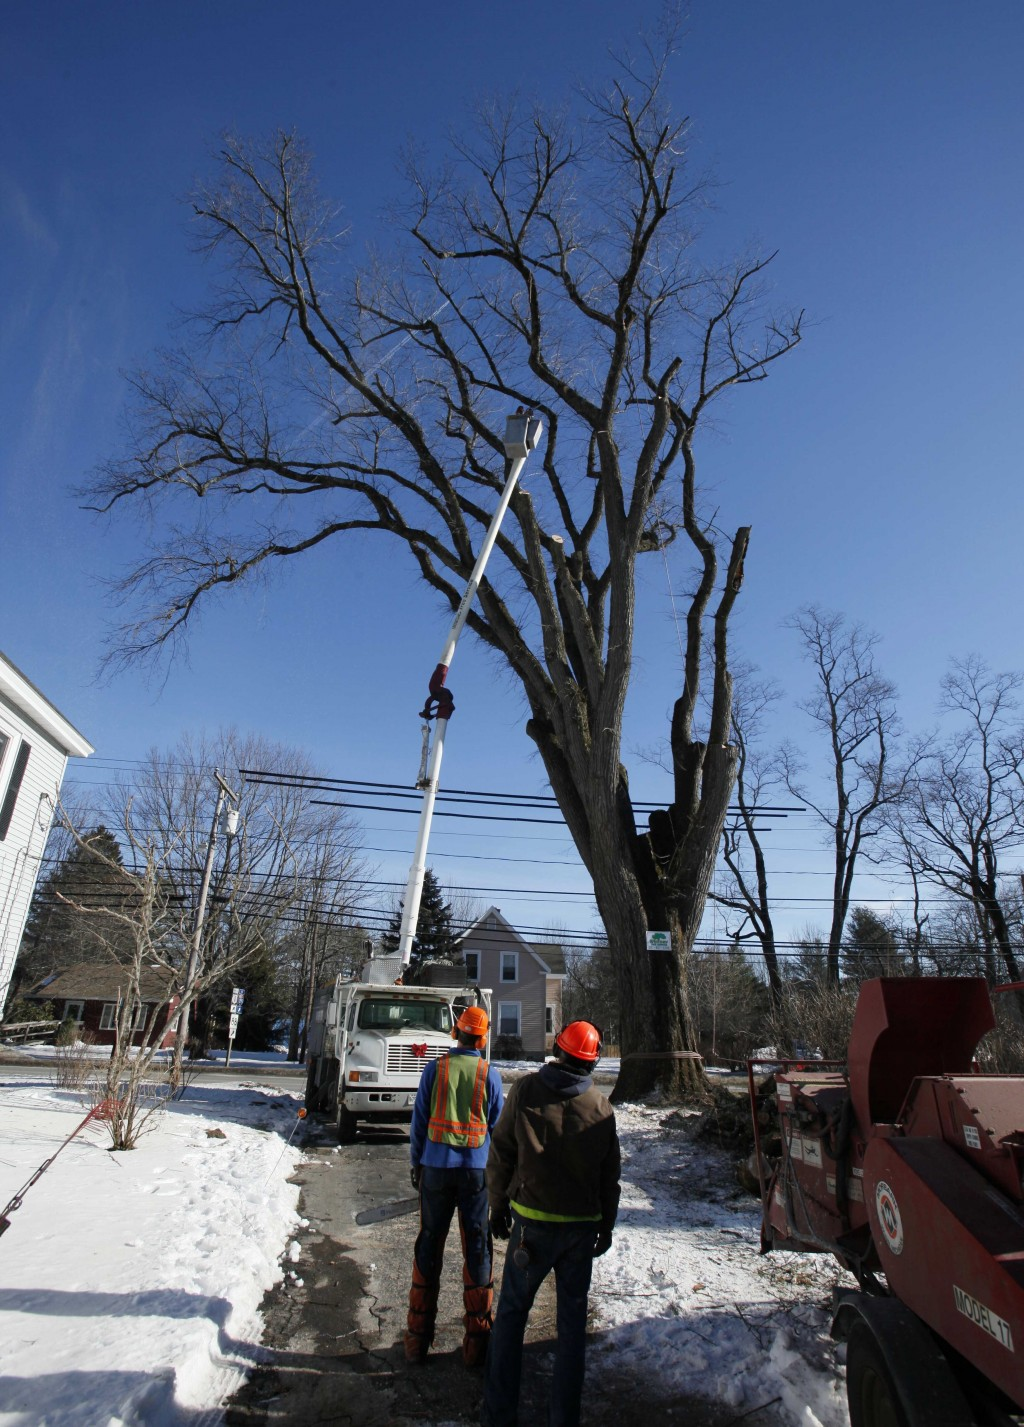 FILE - In this Jan. 14, 2010 file photo, an arborist in a cherry picker cuts limbs from a massive elm tree, nicknamed Herbie, in Yarmouth, Maine. The ...